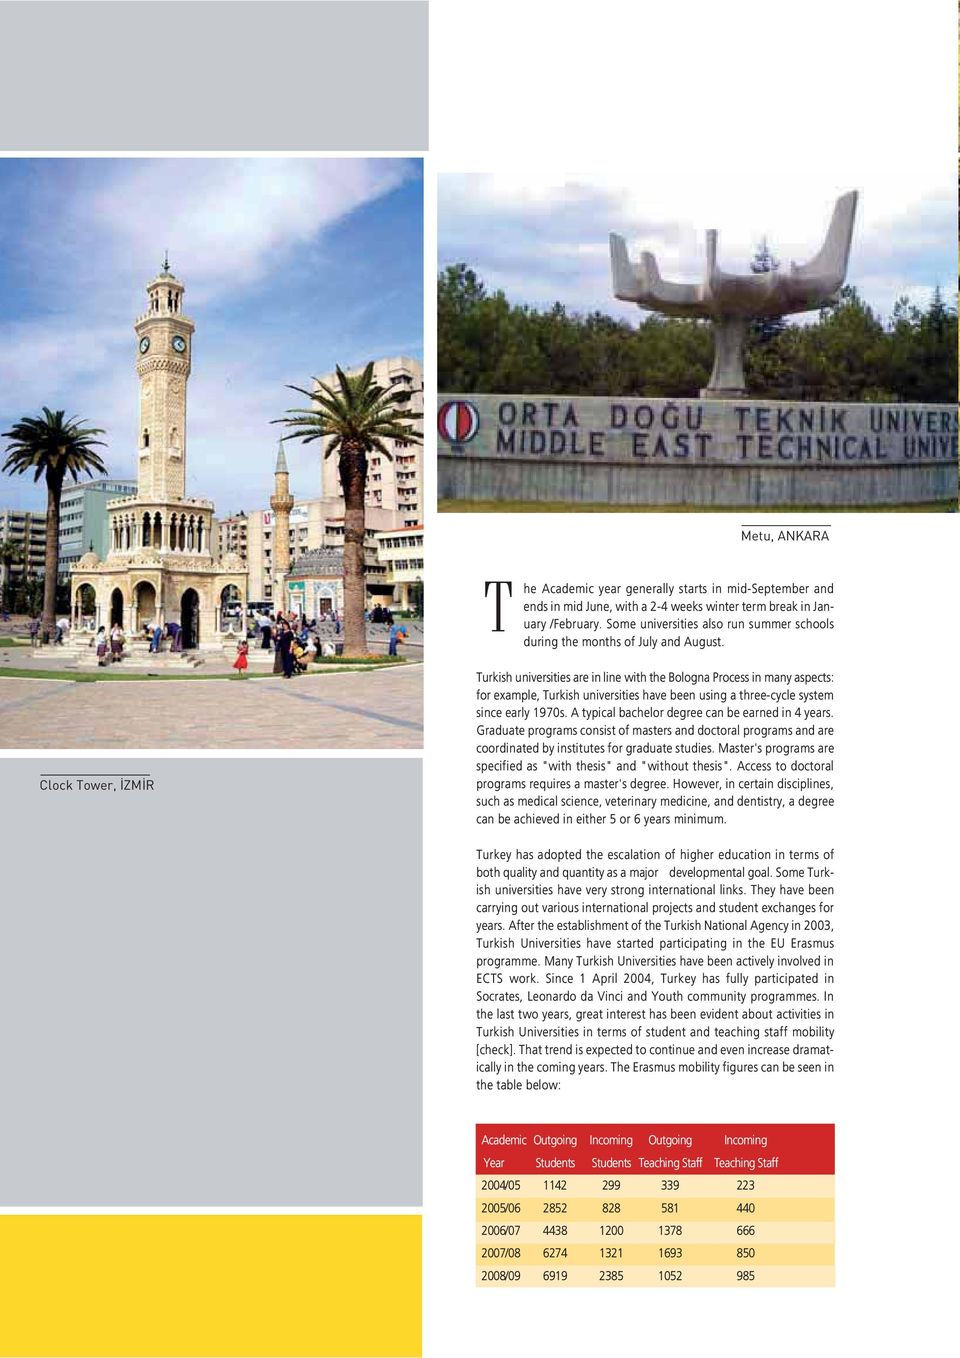 Clock Tower, ZM R Turkish universities are in line with the Bologna Process in many aspects: for example, Turkish universities have been using a three-cycle system since early 1970s.